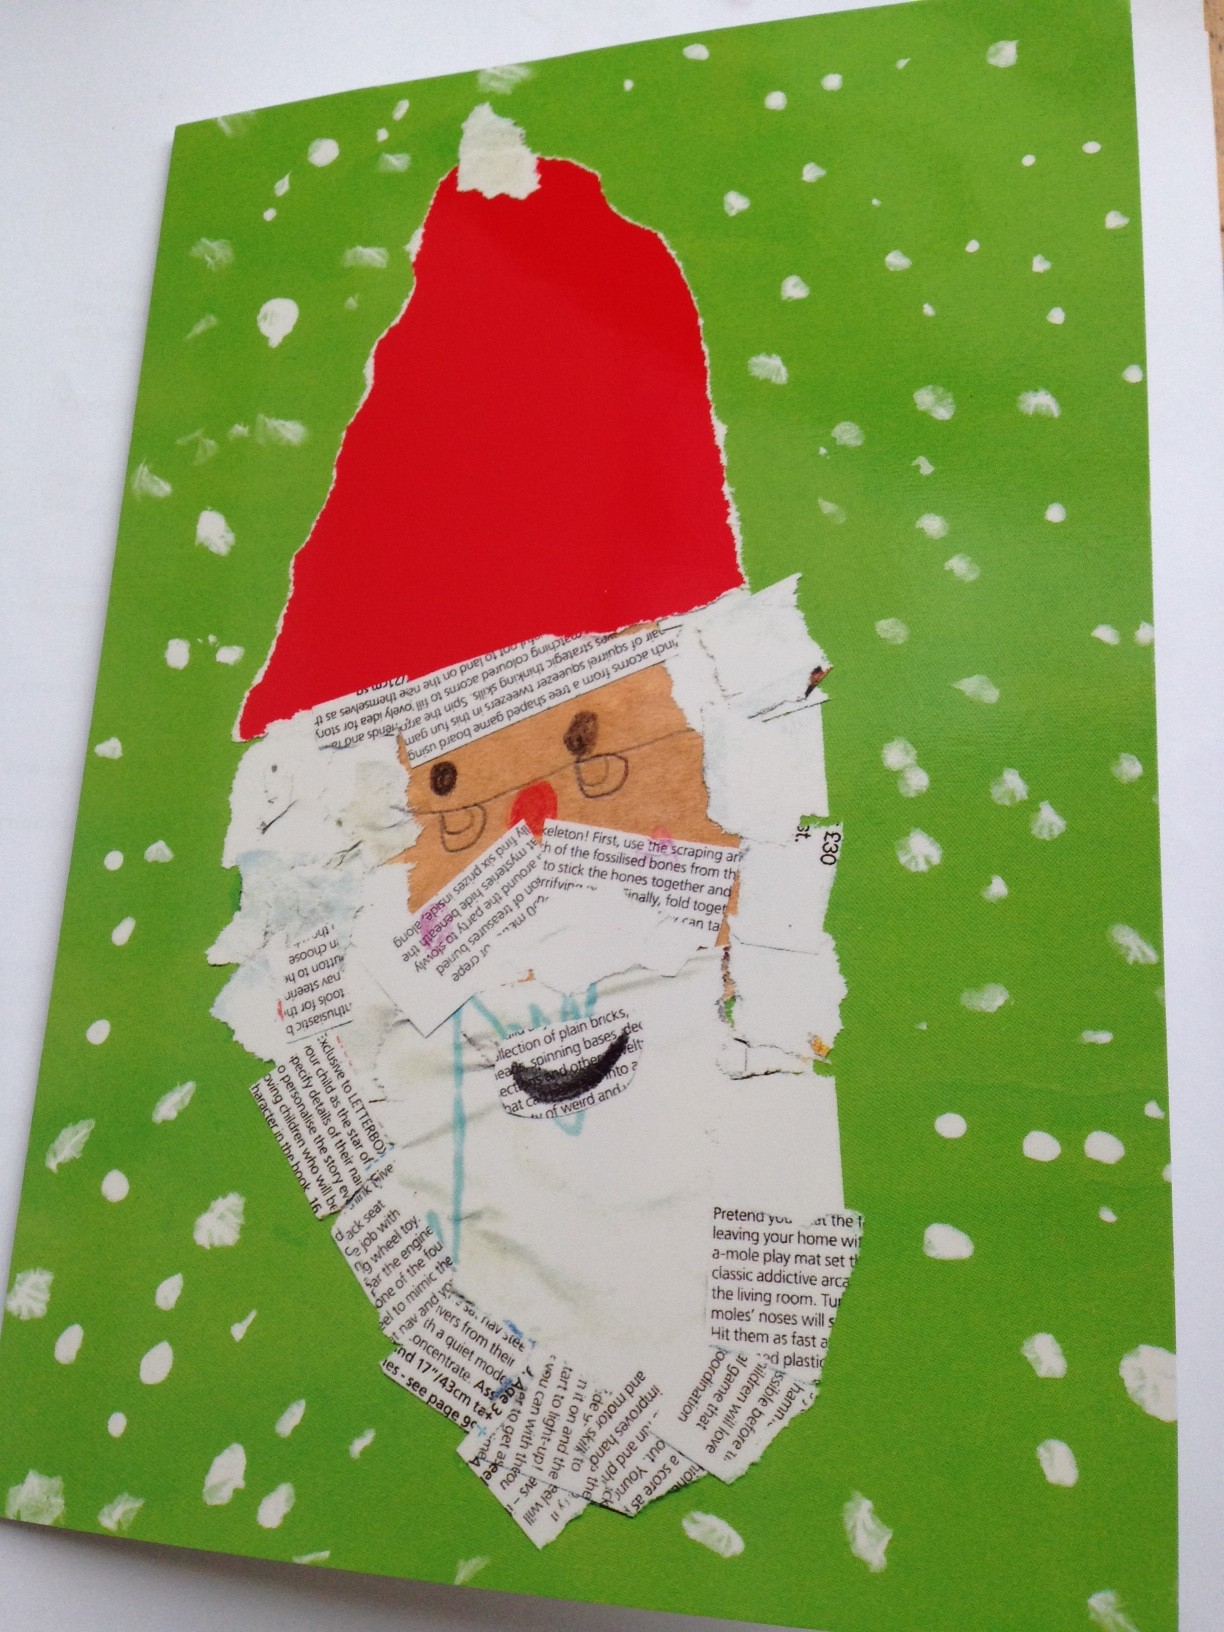 Pta greeting card project cavendish pta childrens christmas card design kristyandbryce Gallery